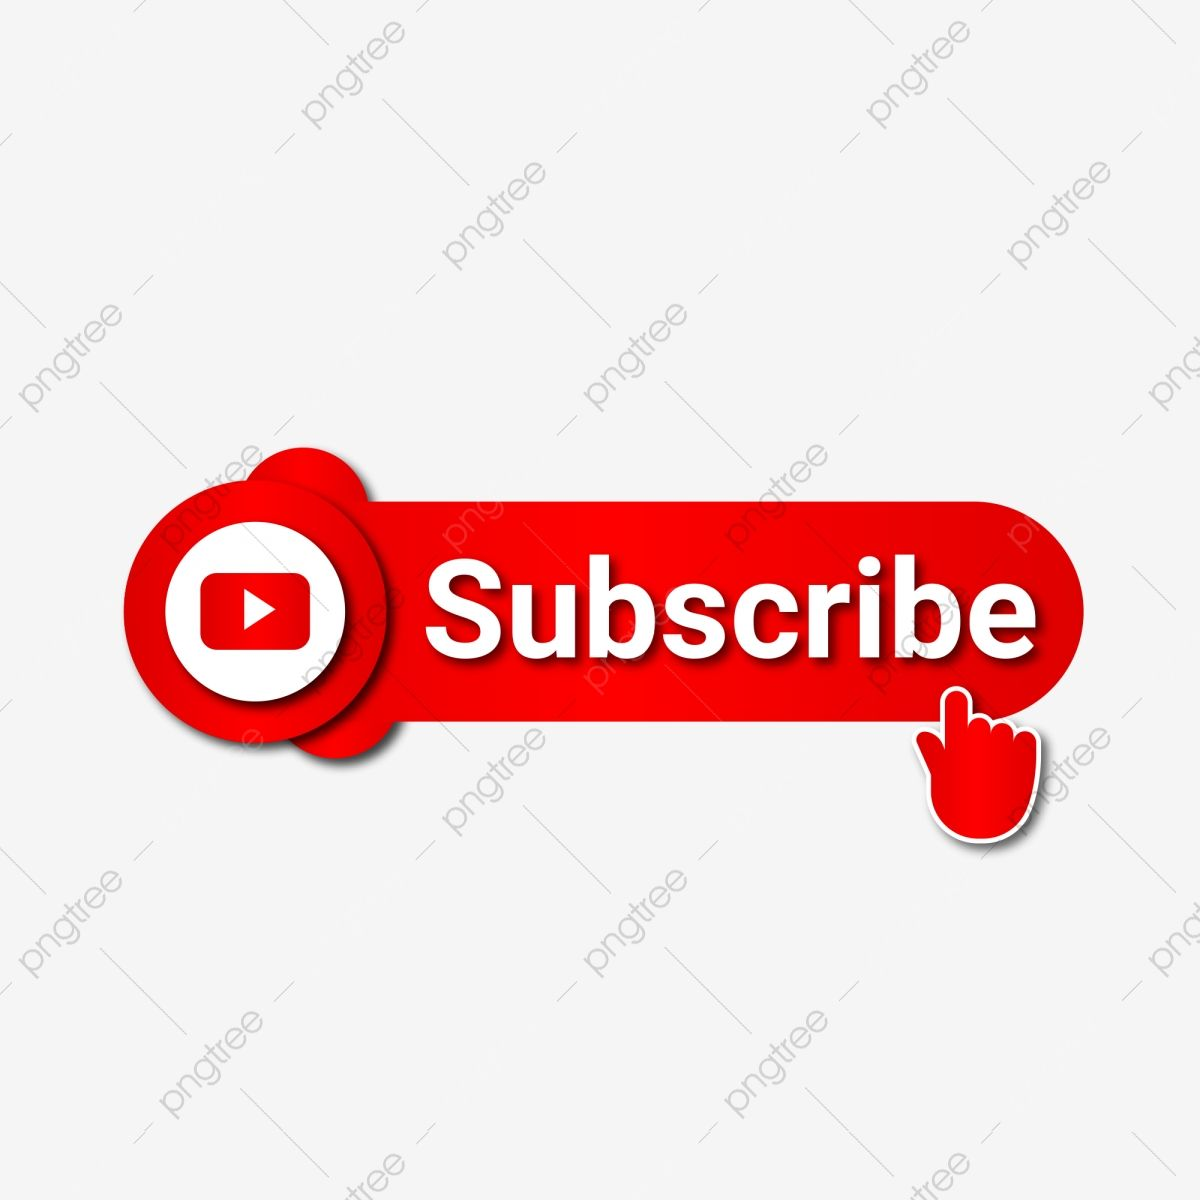 Youtube Subscribe Button Youtube Youtube Subscribe Youtube Png Png And Vector With Transparent Background For Free Download Youtube Social Media Icons Youtube Channel Art